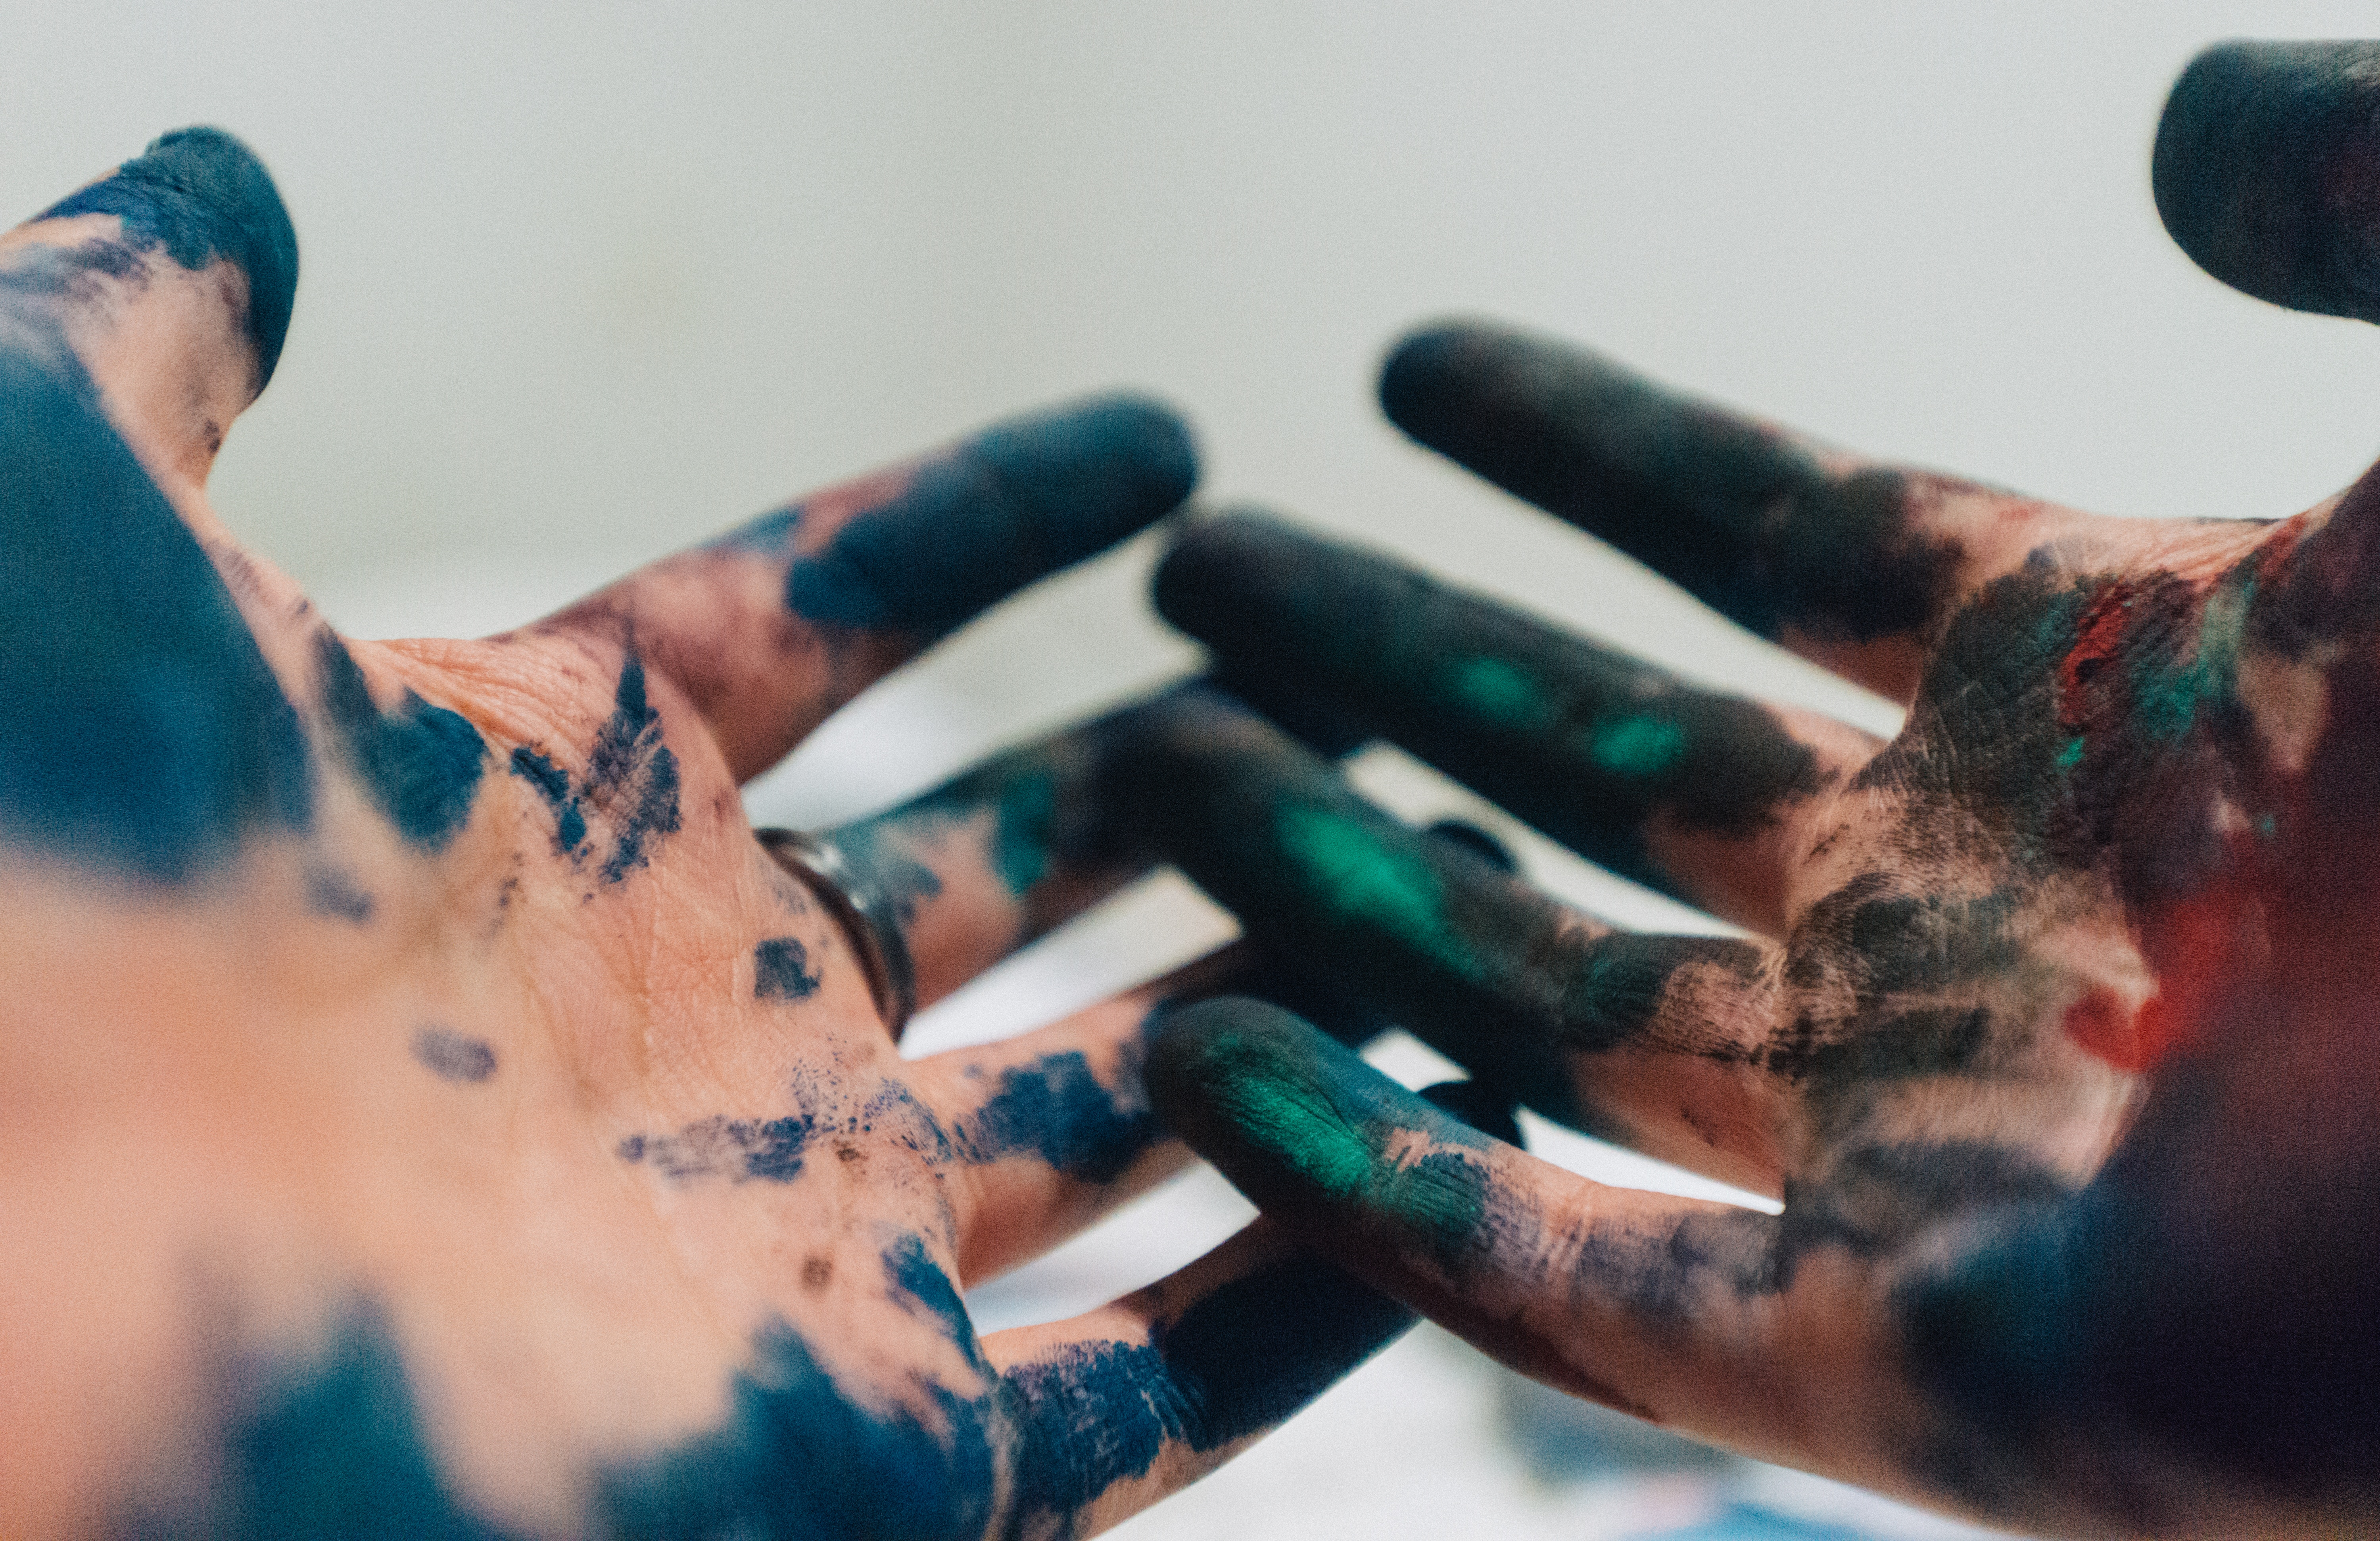 hands covered in paint